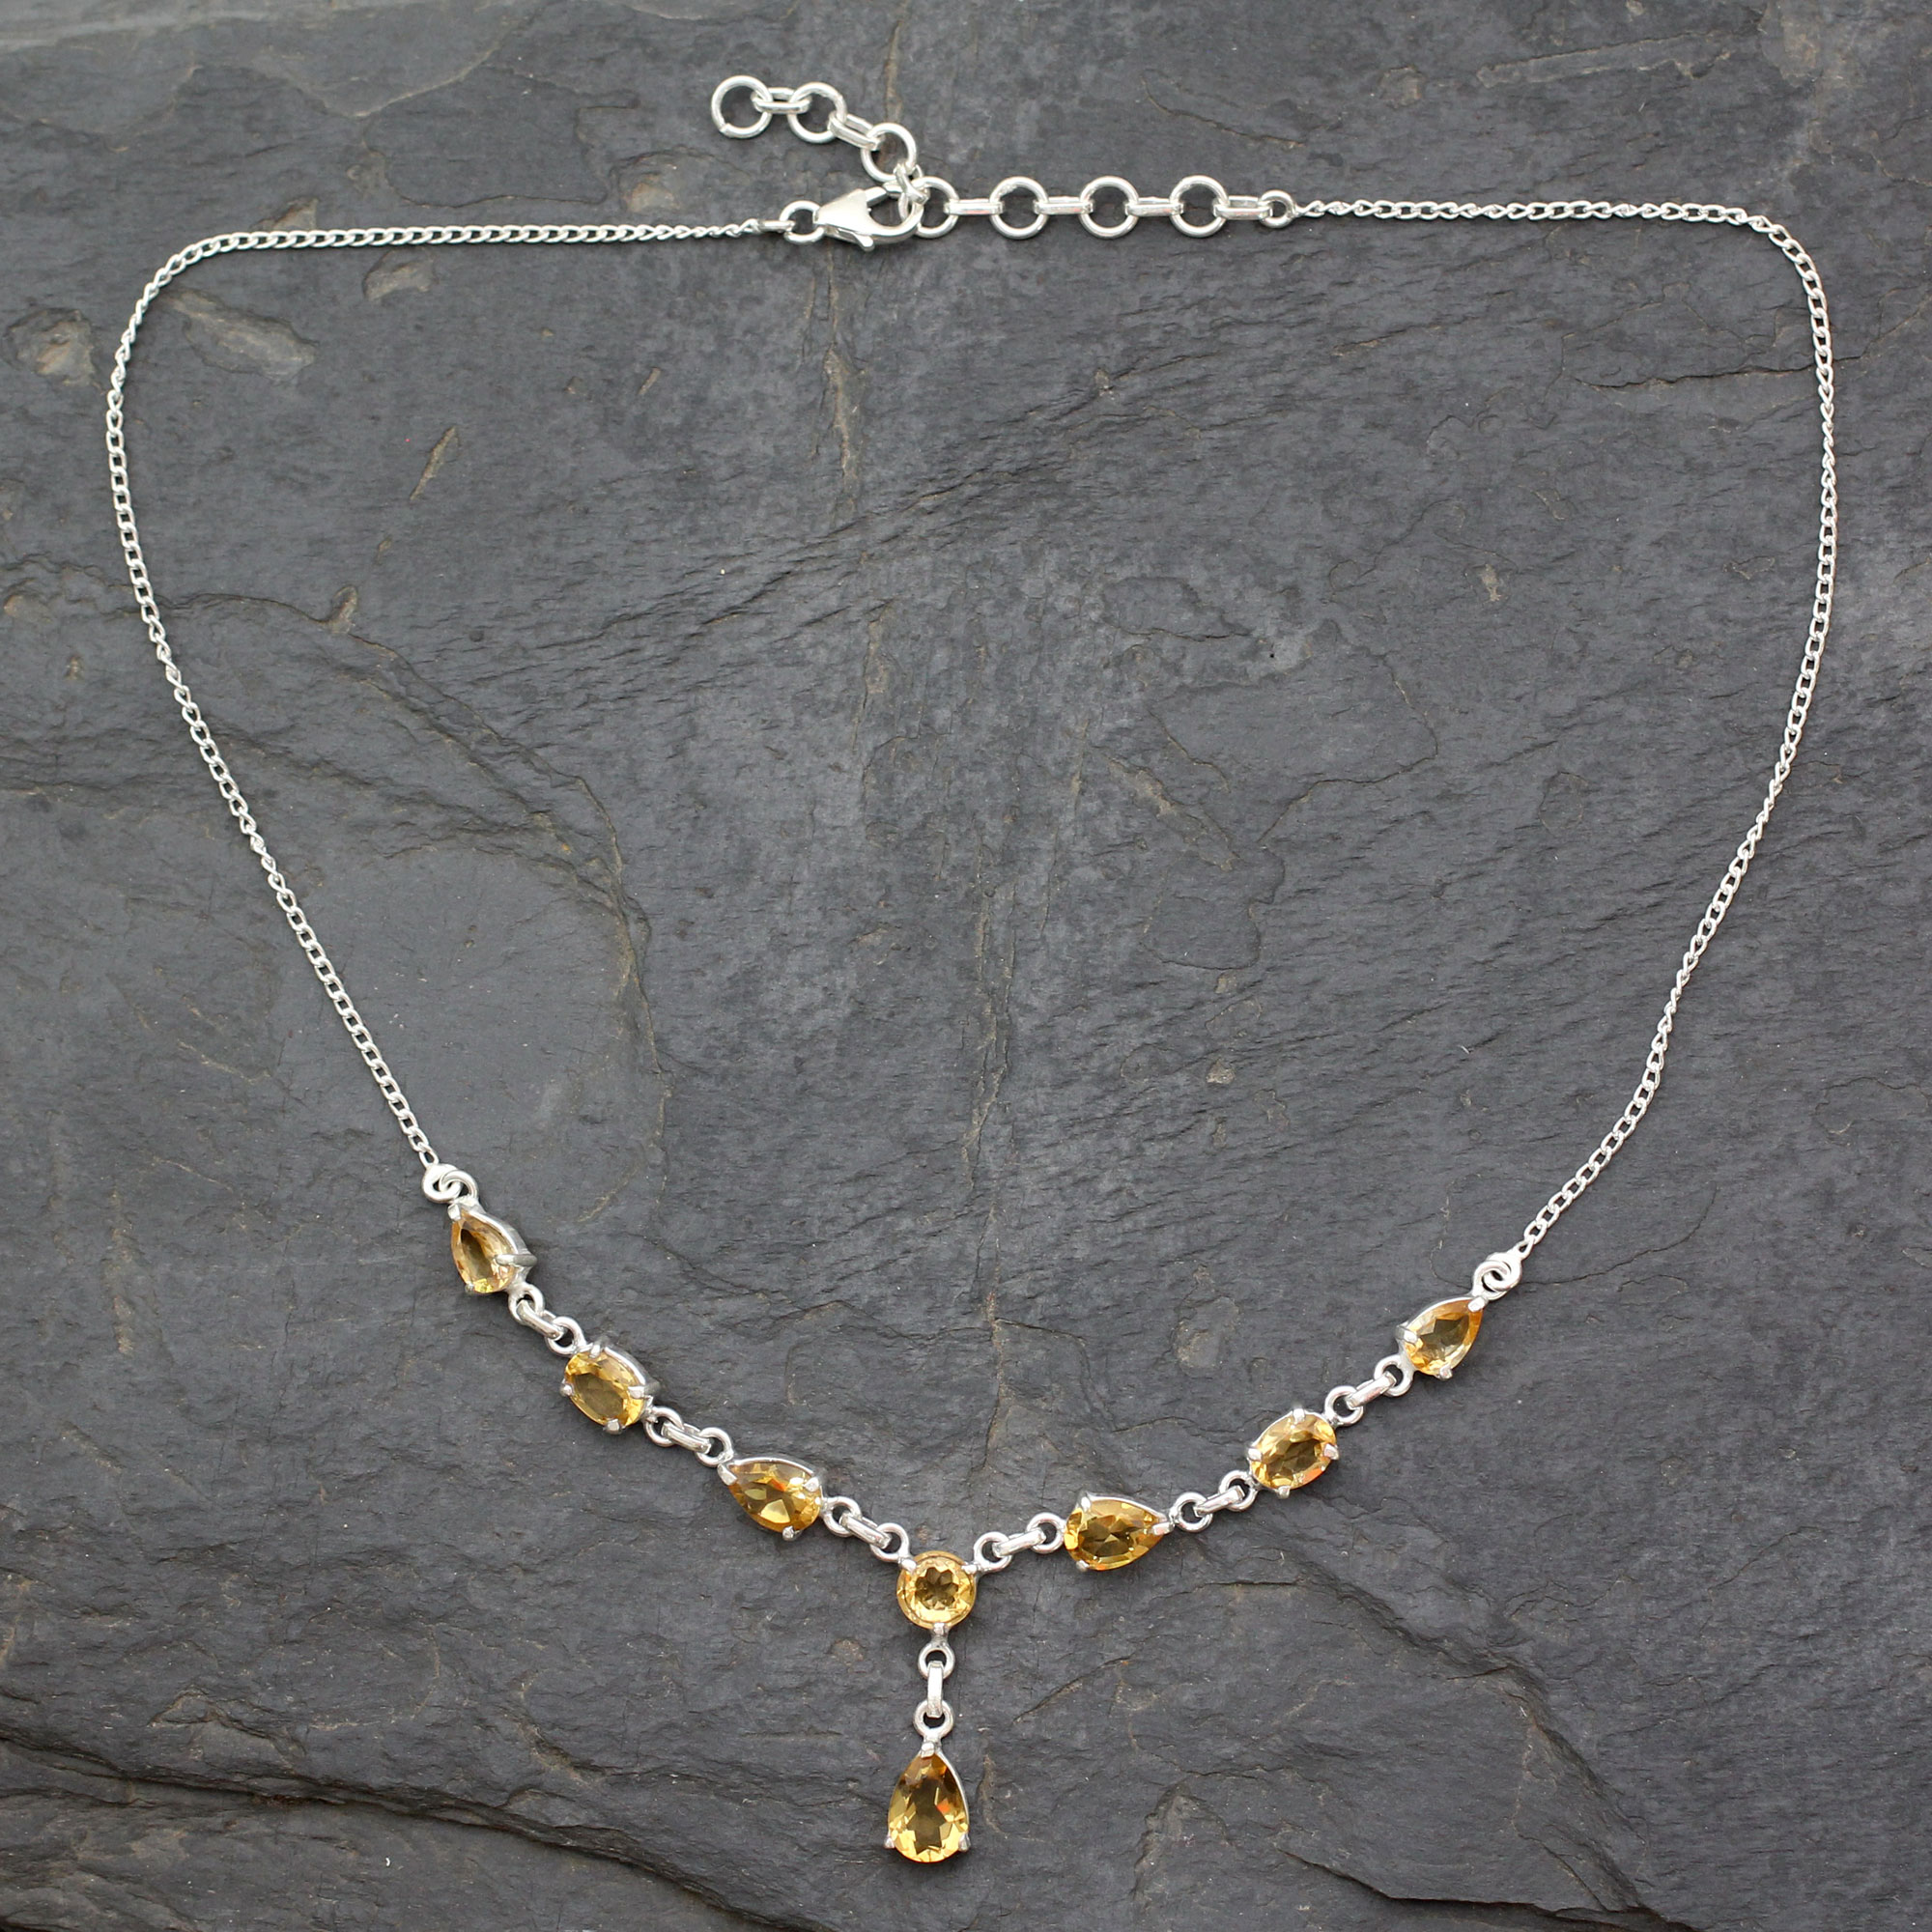 Citrine Y necklace, 'Golden Princess' Yellow gemstone sterling silver adjustable chain